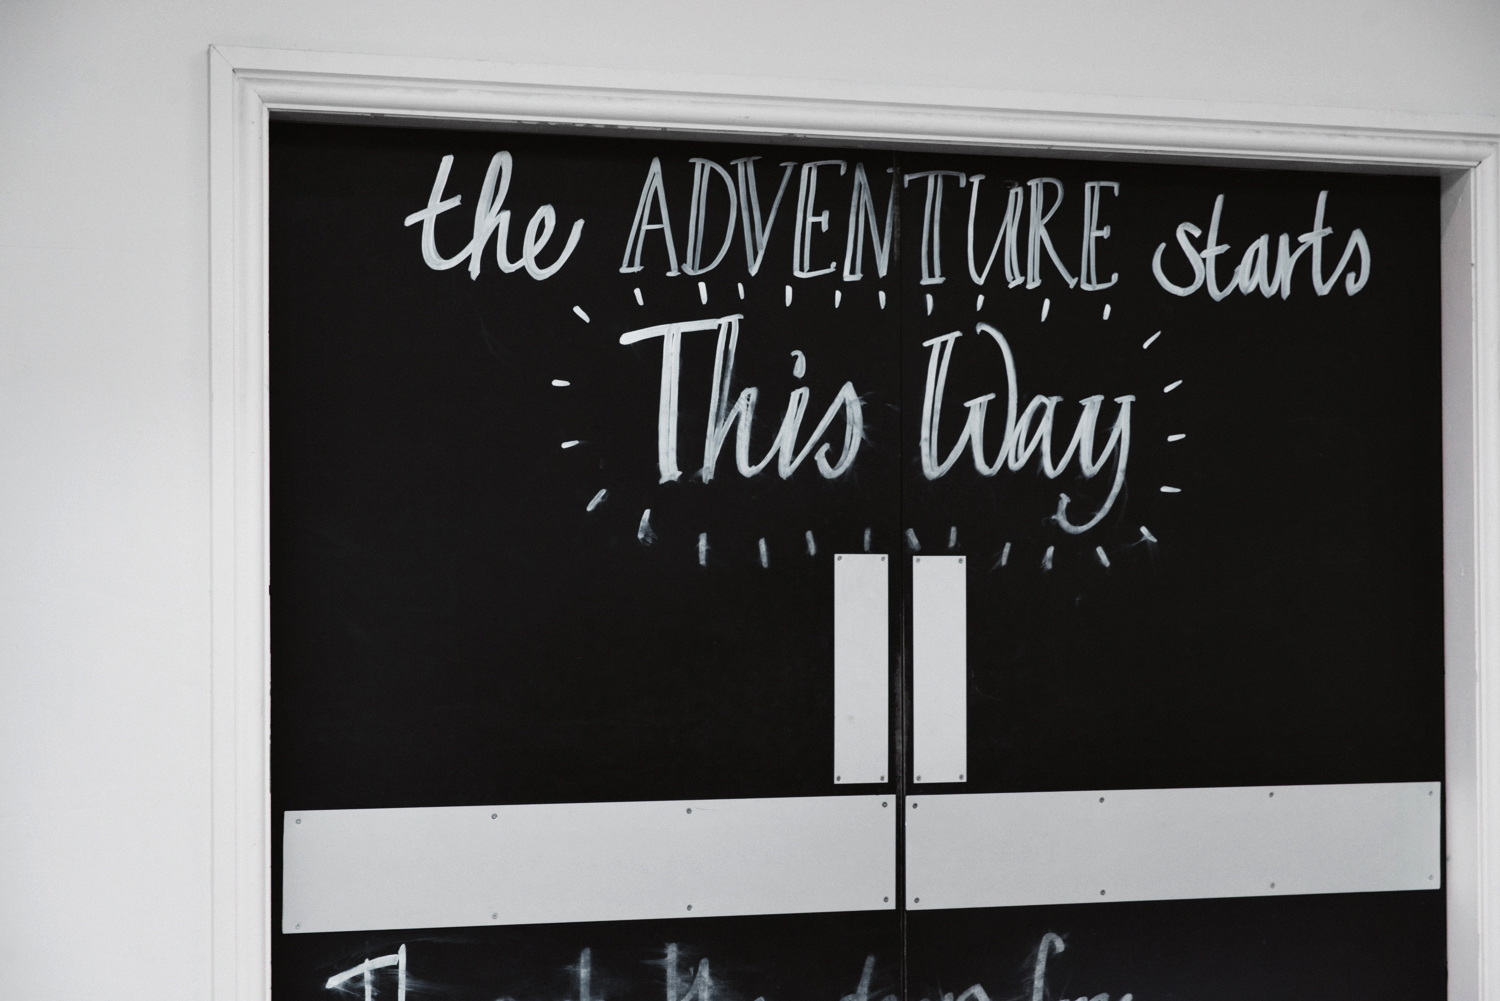 """The adventure starts this way"" - at Bounce Below"